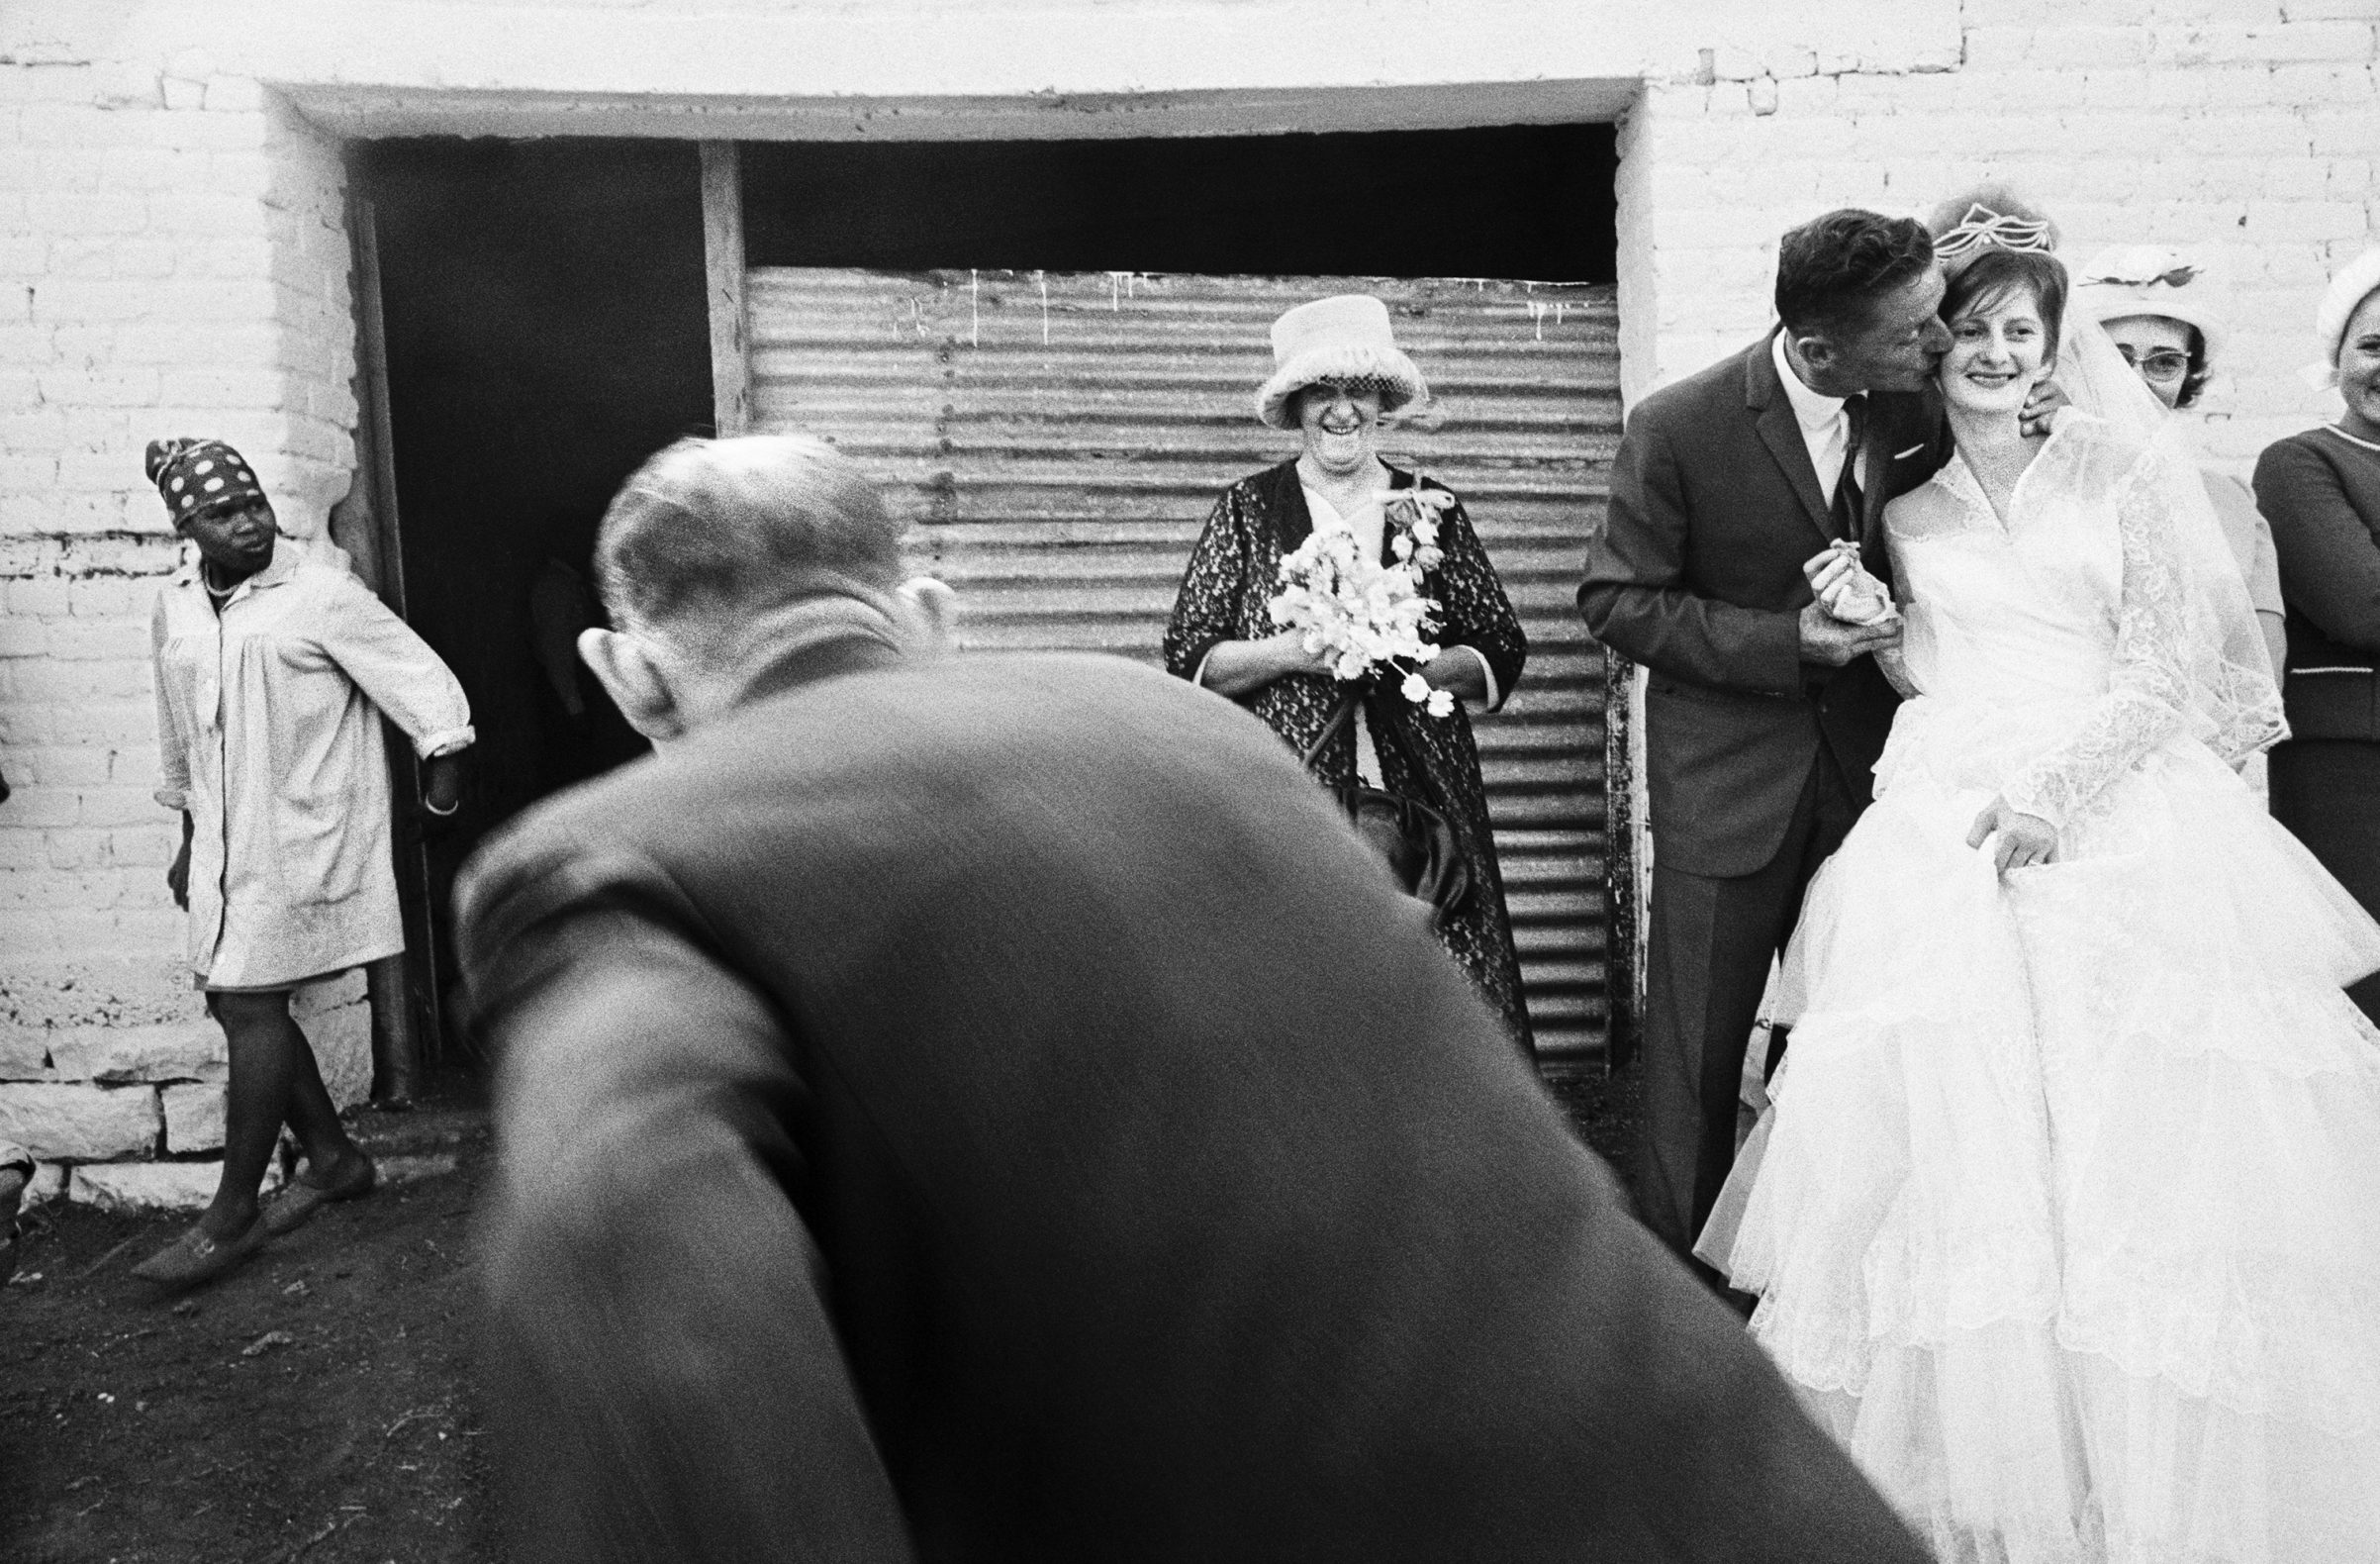 Wedding on a farm in the Barkly East district, Cape Province (Eastern Cape). December 1966